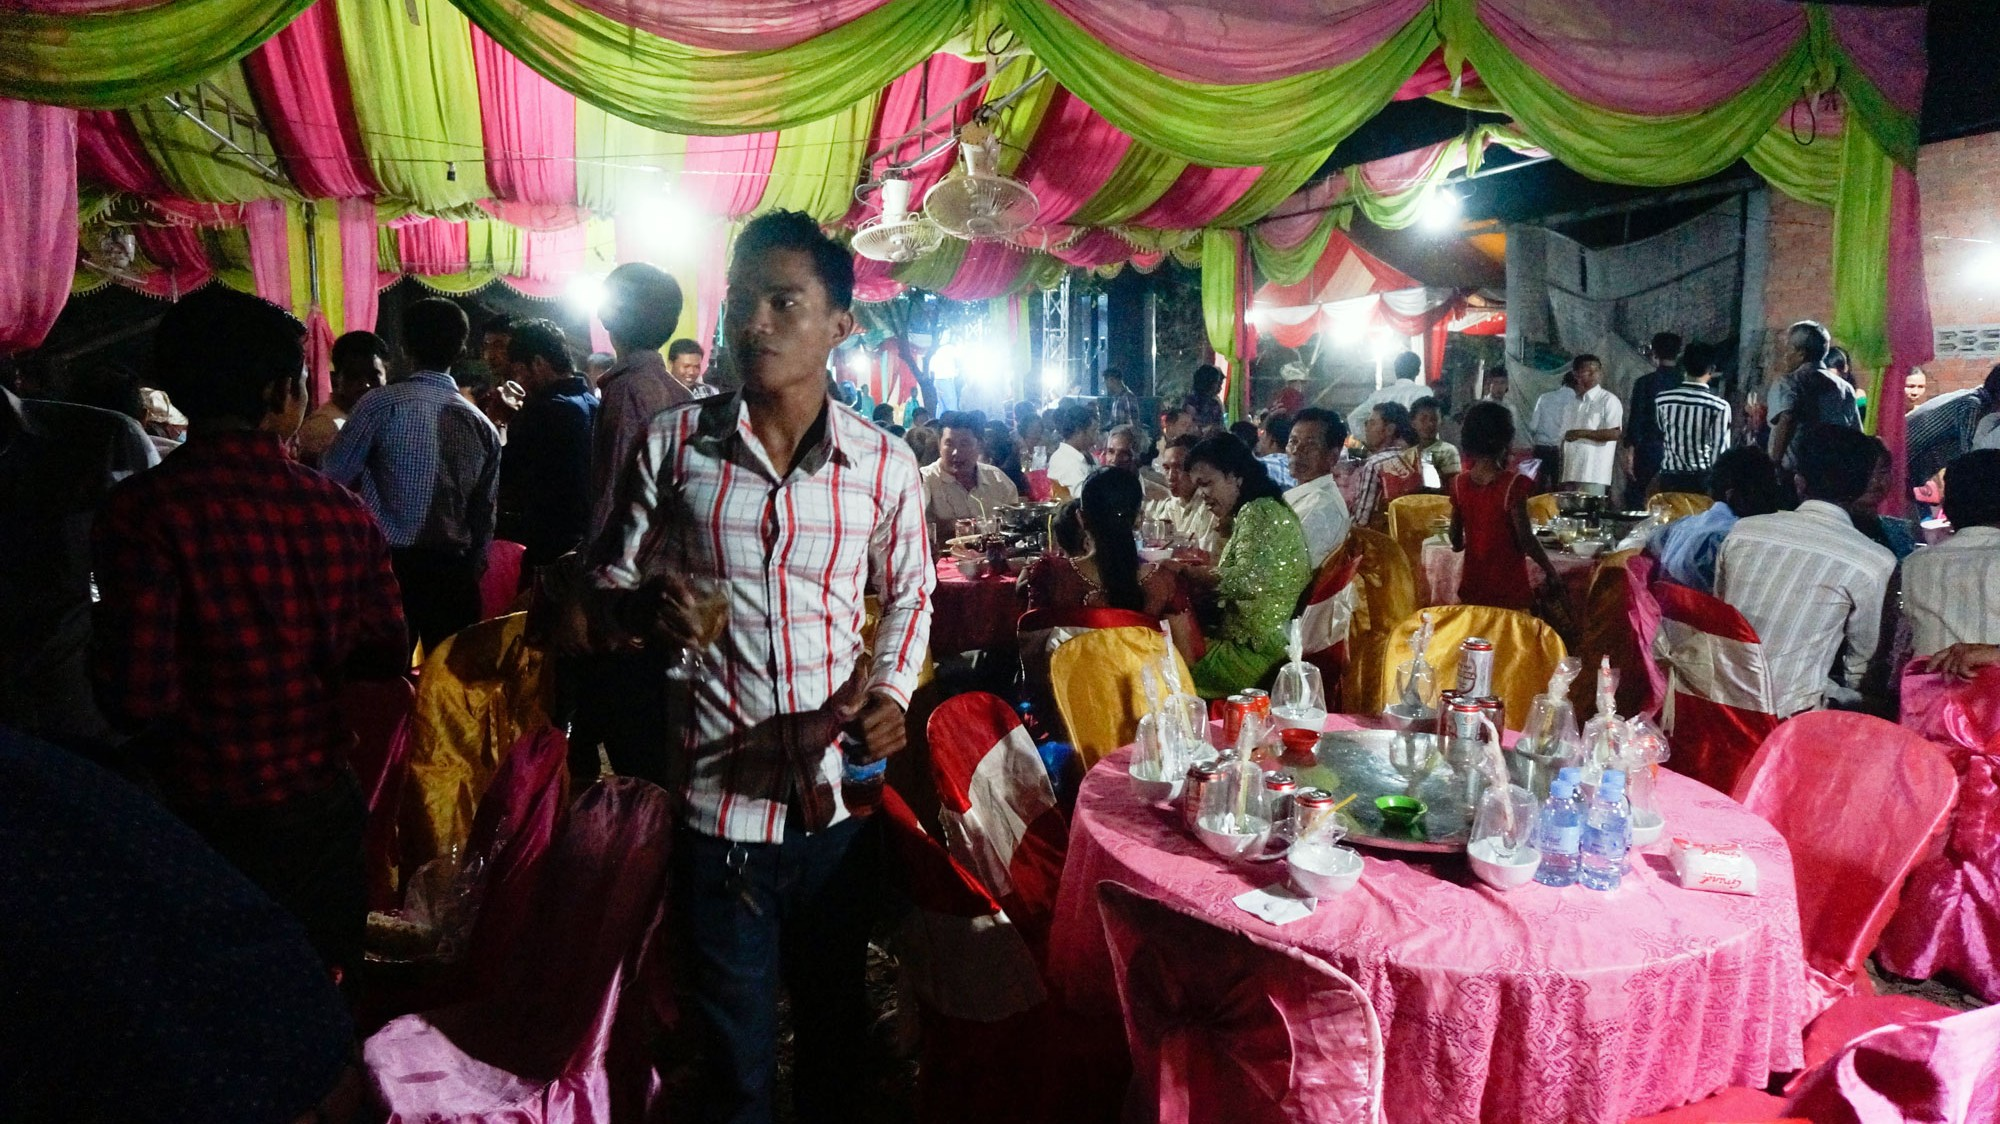 khmer-wedding-cambodia1